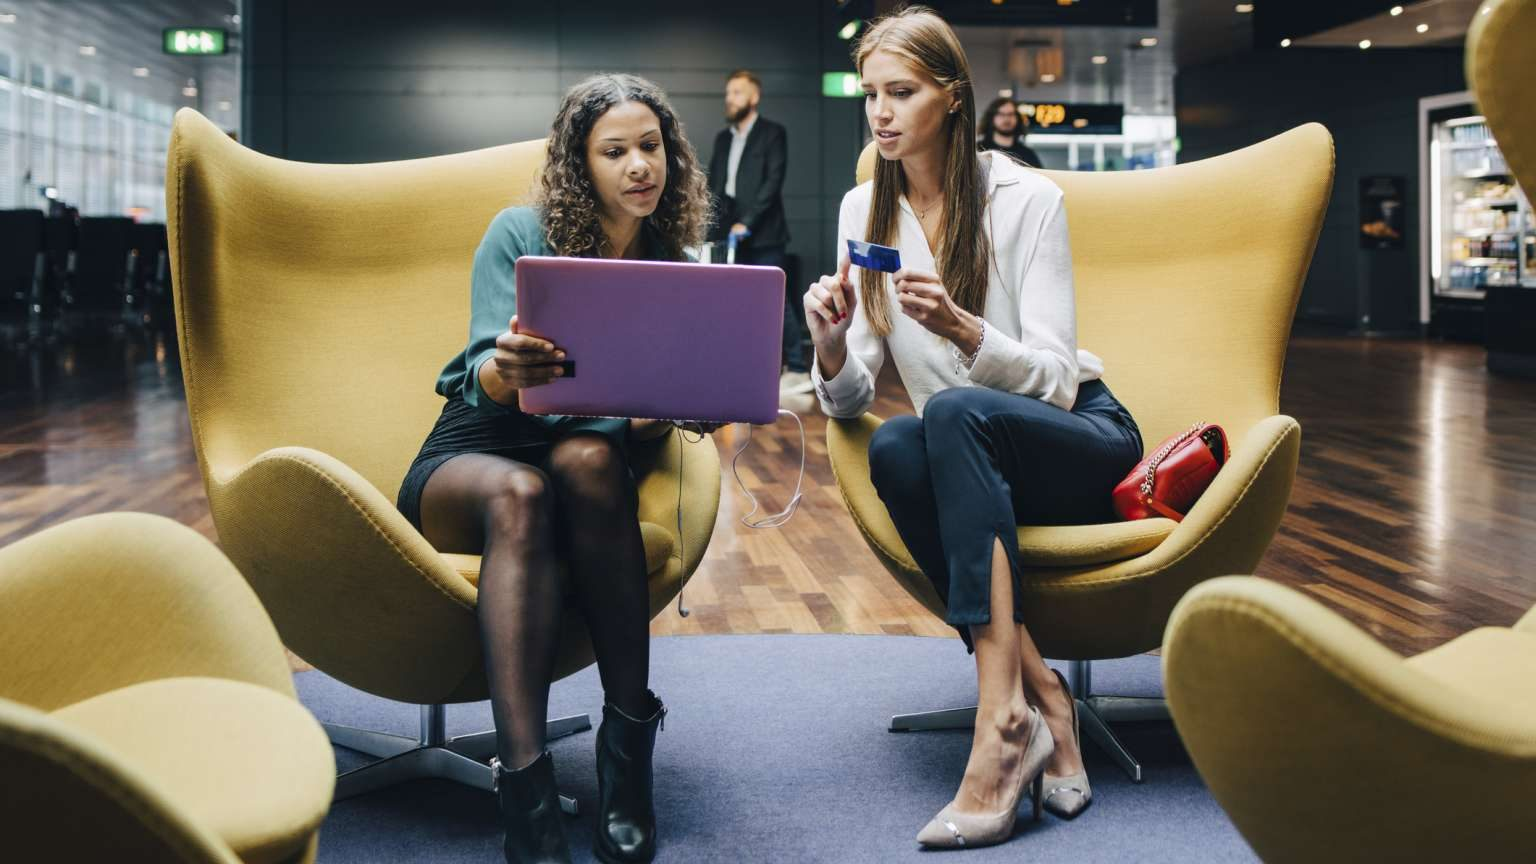 Women shopping on laptop in airport lounge